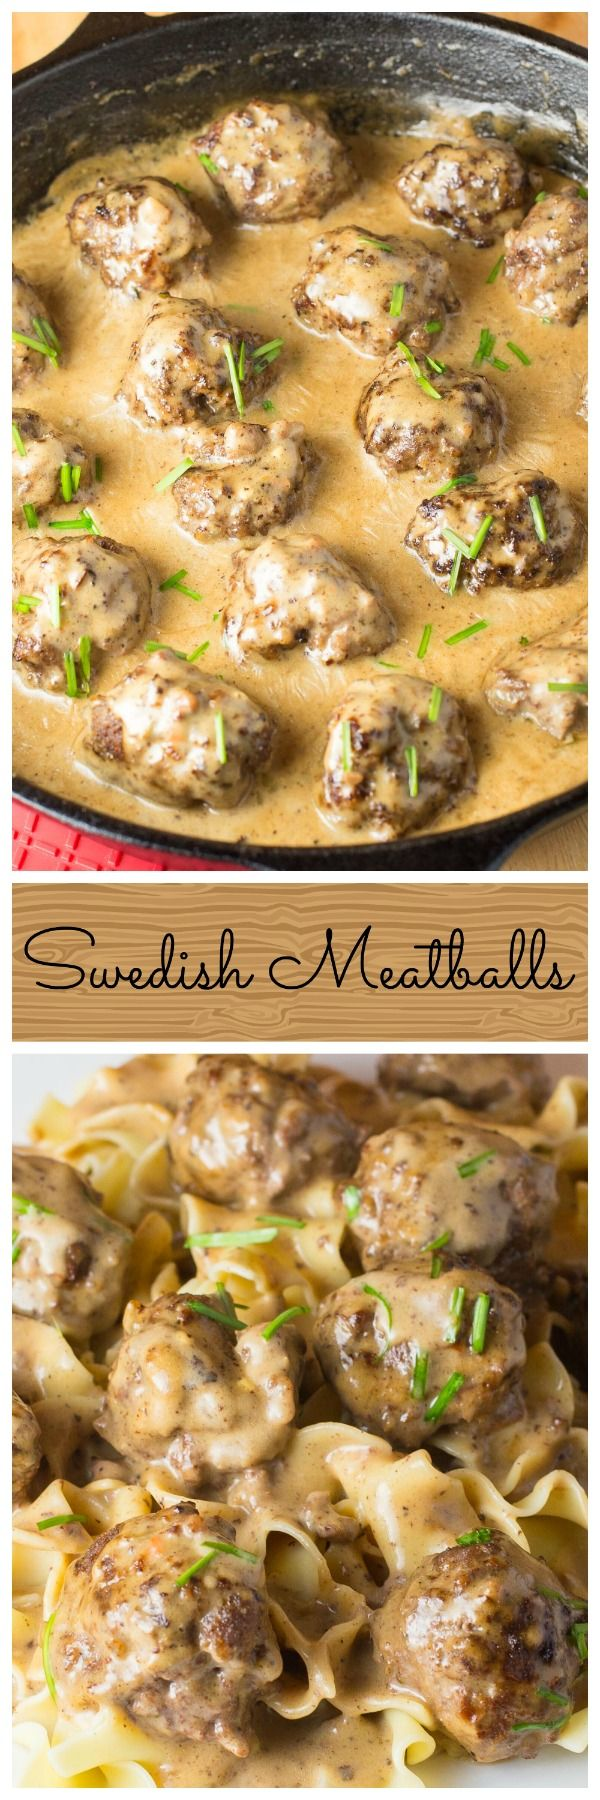 Click To Learn The Secret To Lose 34 Pounds in 21 Days, These meatballs are awesome! A super meatball recipe slathered in rich, creamy sauce. , #weightloss, #fitness ,#dietplan, burnfat, #fatloss, #healthyrecipe